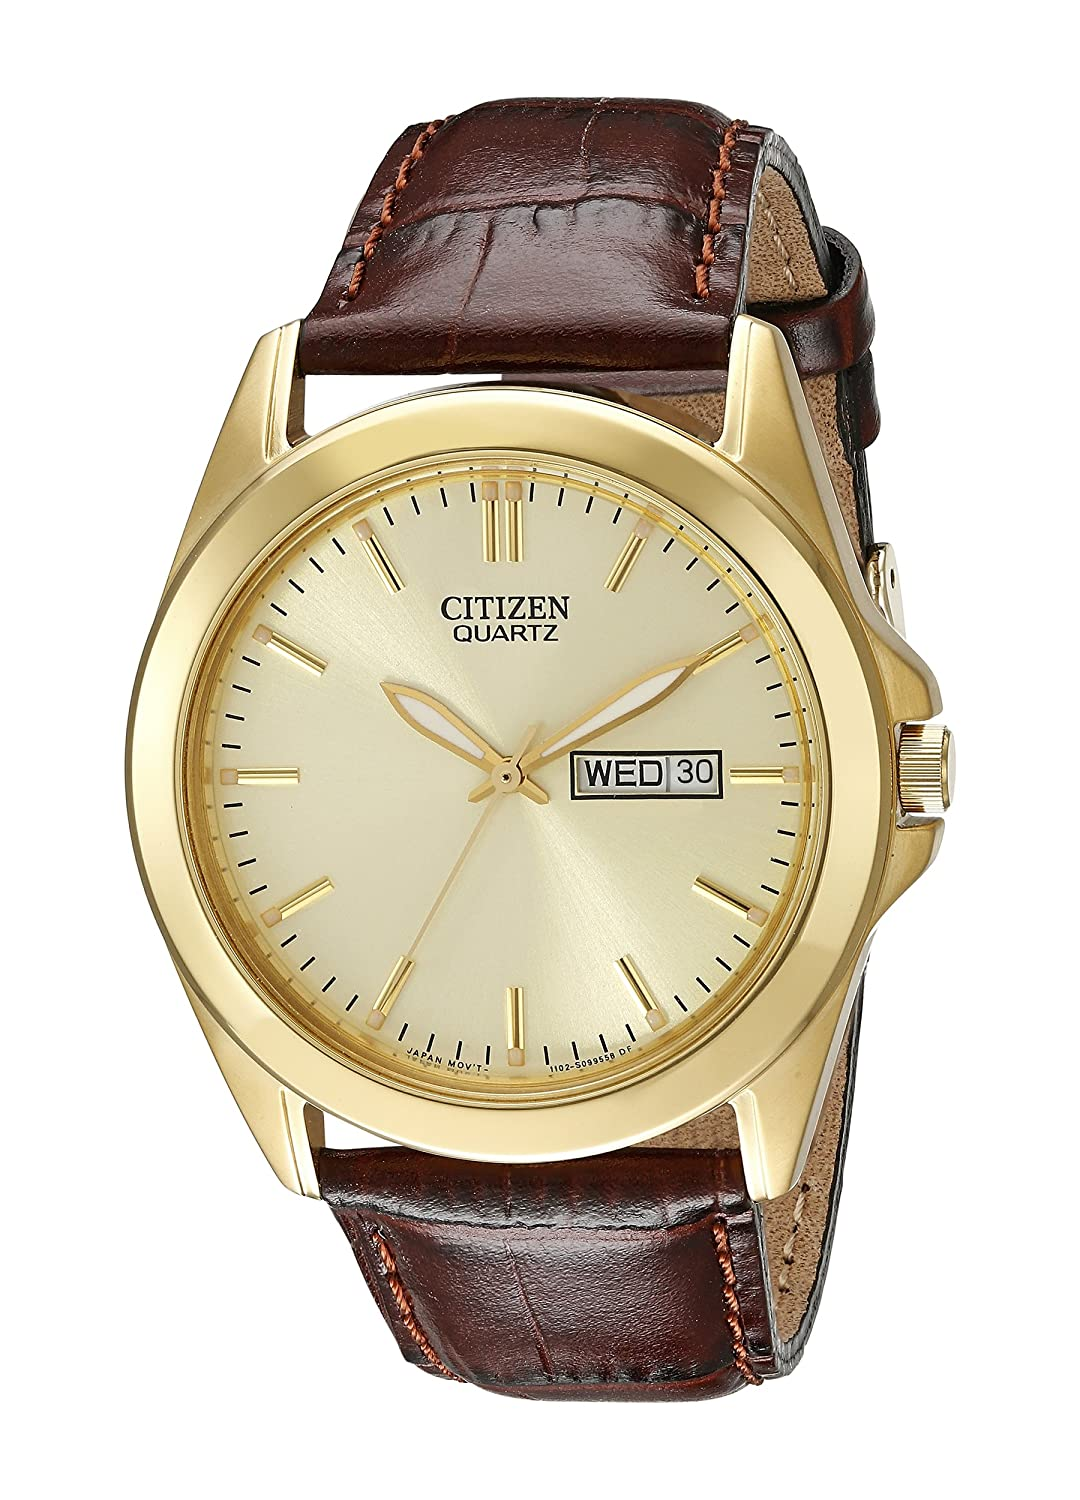 Citizen Men's Goldtone Watch With Brown Leather Strap by Citizen